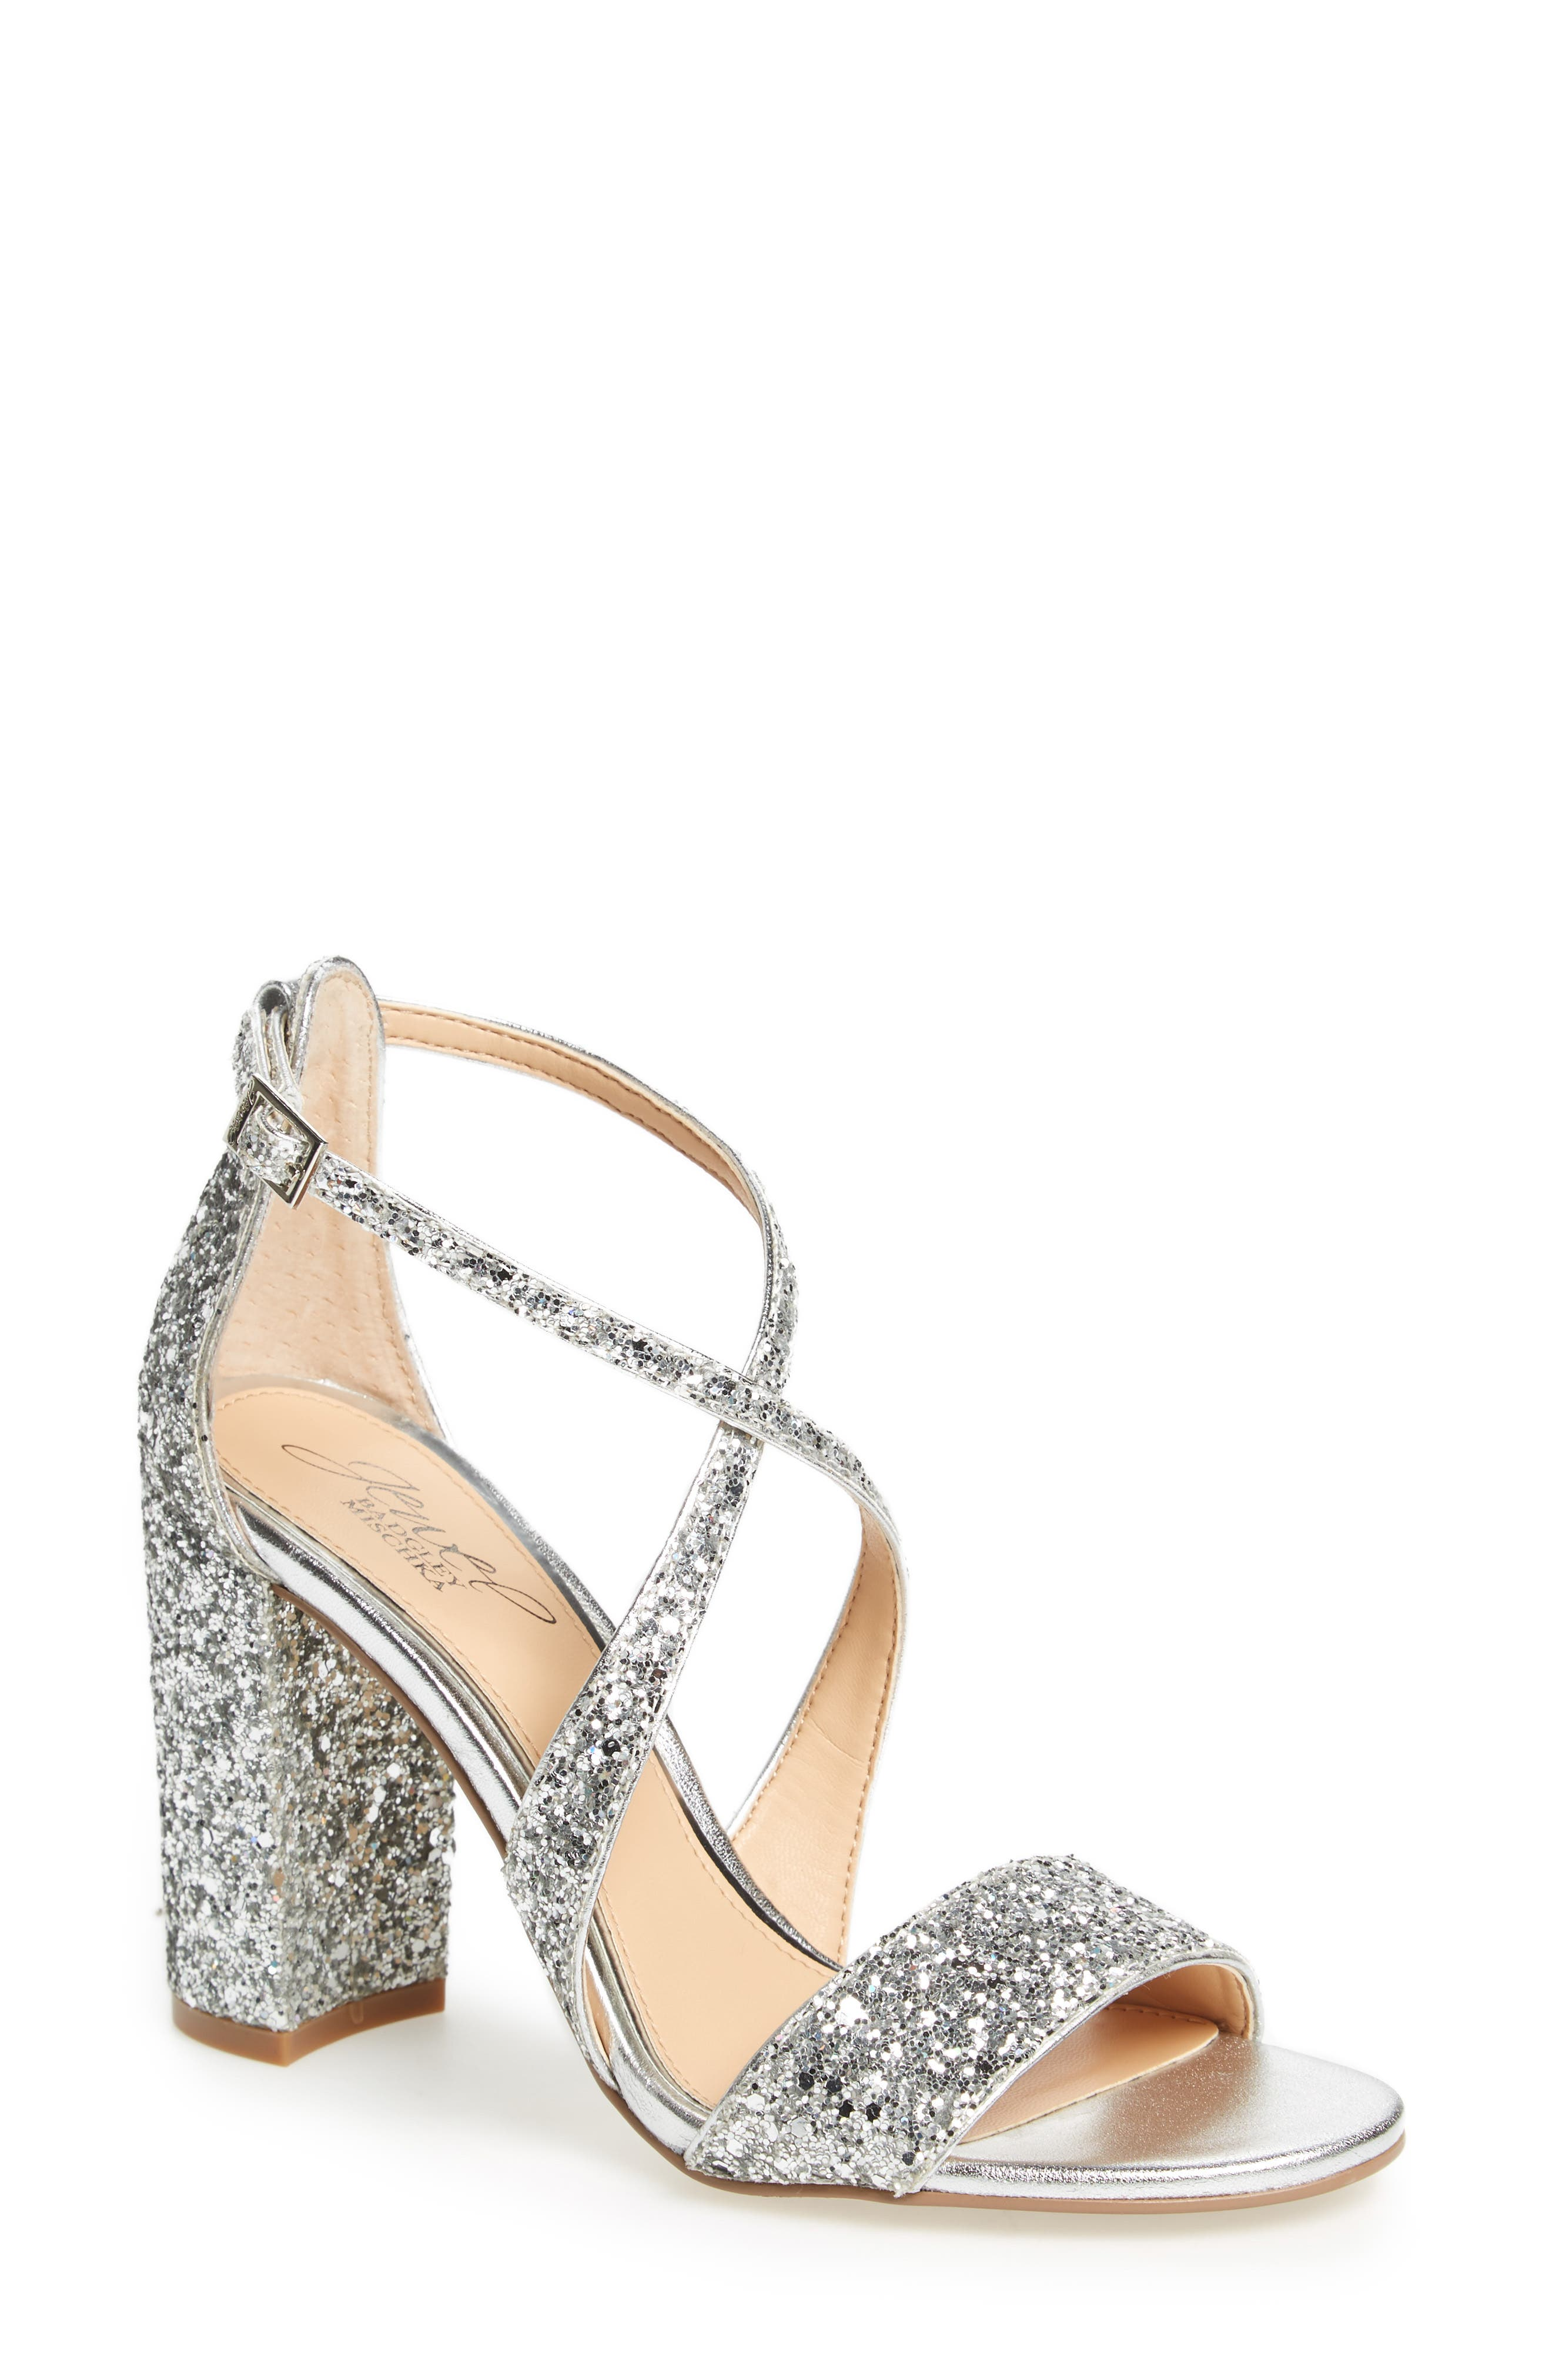 Cook Block Heel Glitter Sandal,                             Main thumbnail 1, color,                             SILVER LEATHER